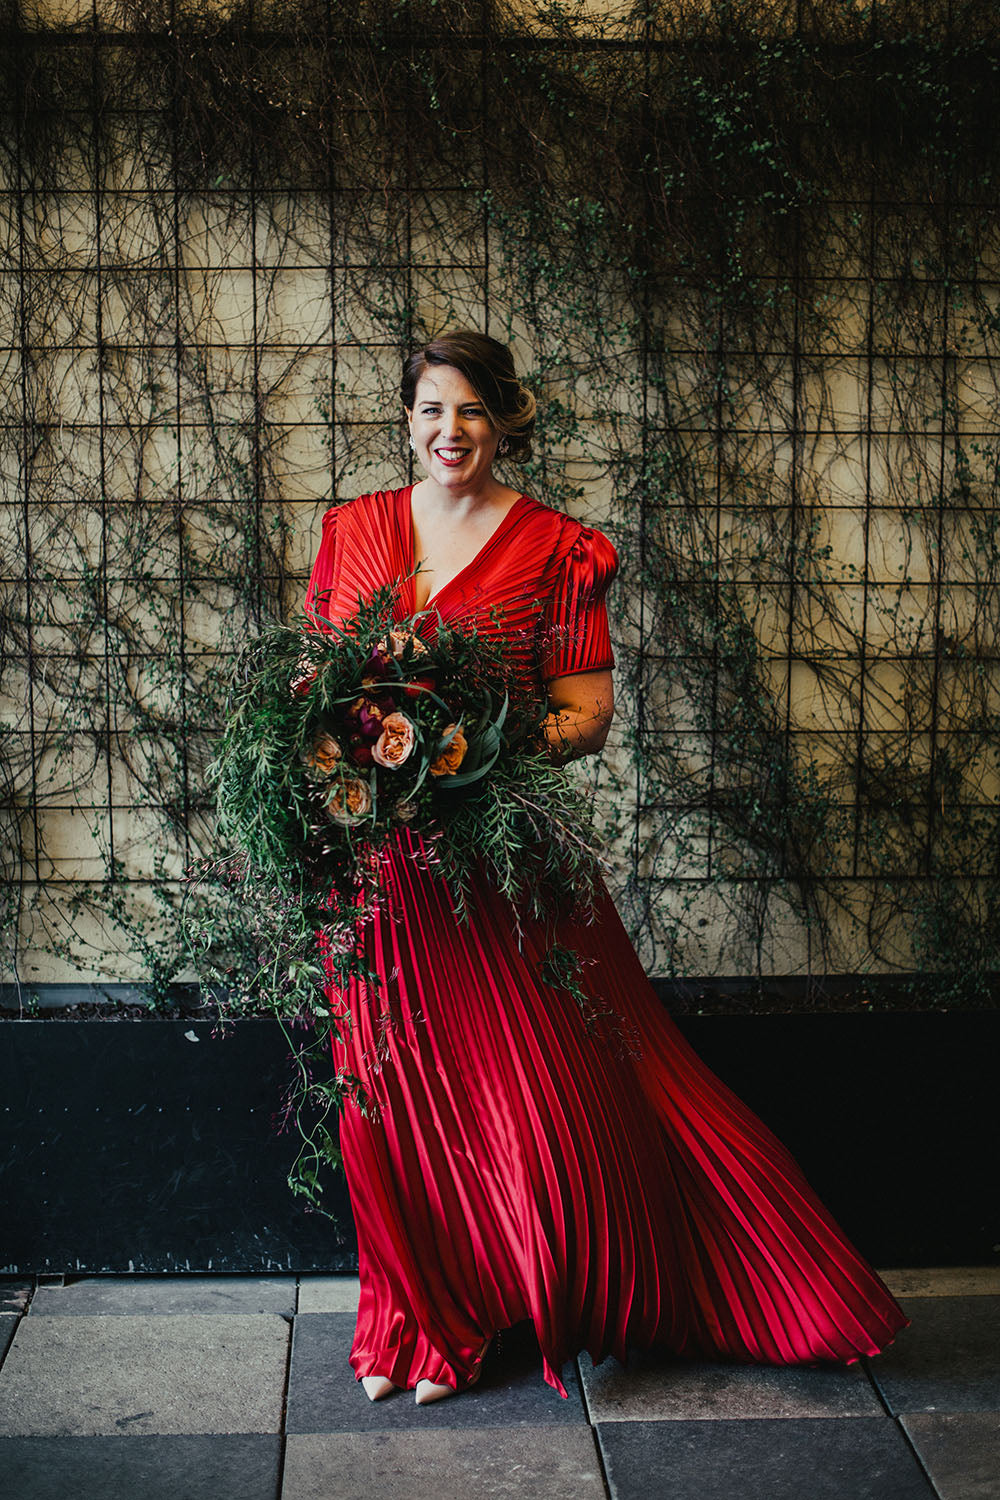 Bride holding bridal bouquet at wedding in red dress